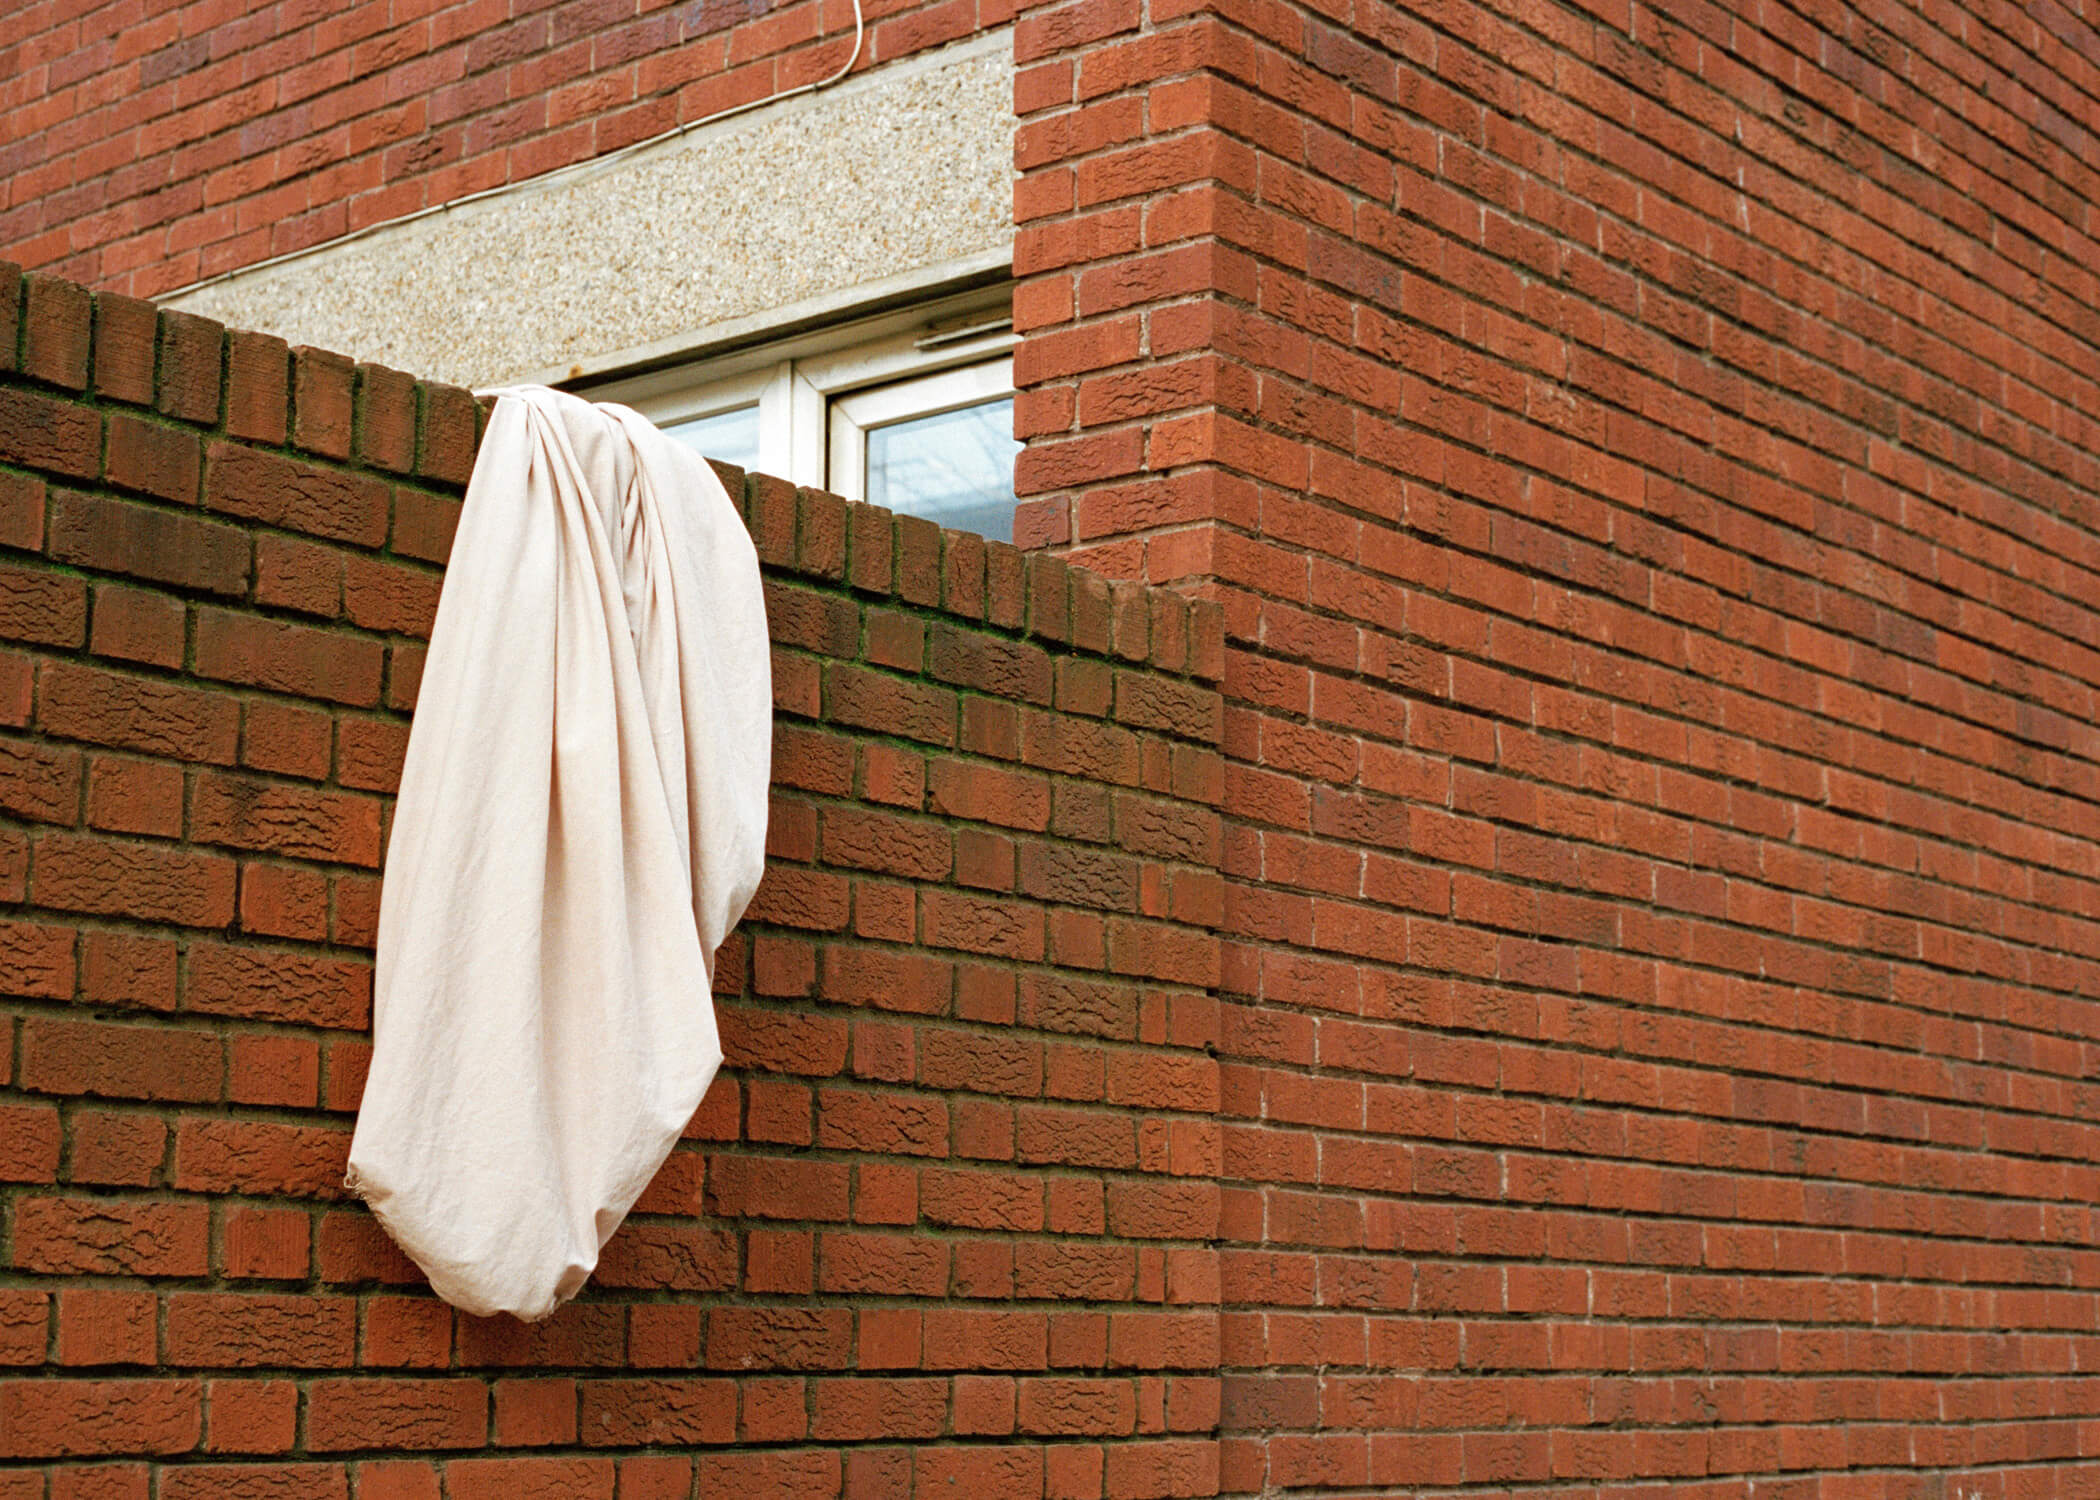 Skaidrė Rudokaitė - Ambivalence bed sheet hanging off red brick wall the south west collective